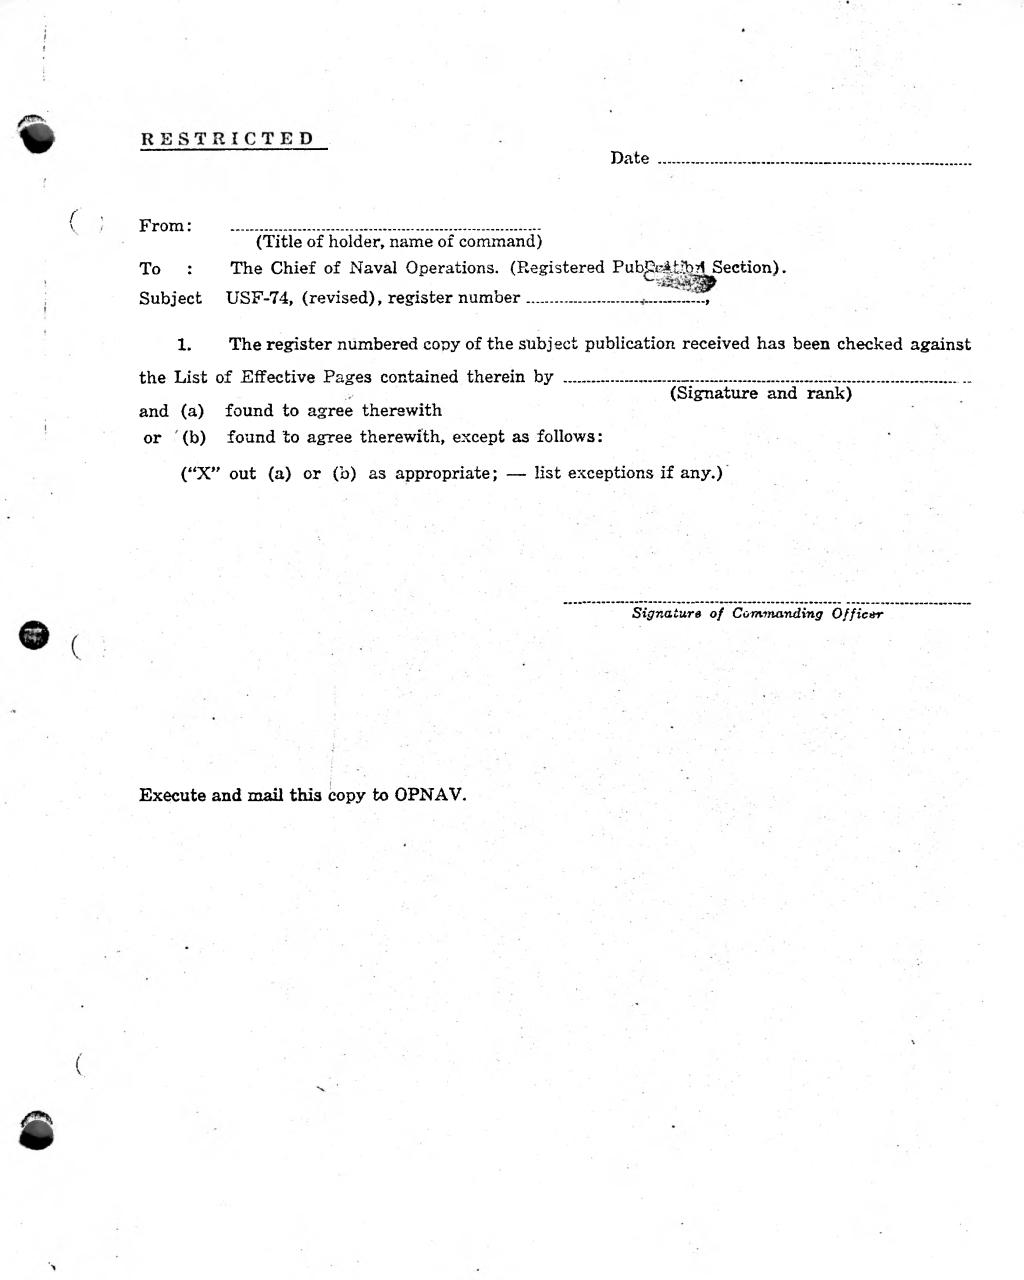 USF-74_Tact&Doct-Acft_V1-CV-Acft_194103.pdf - page 3/213